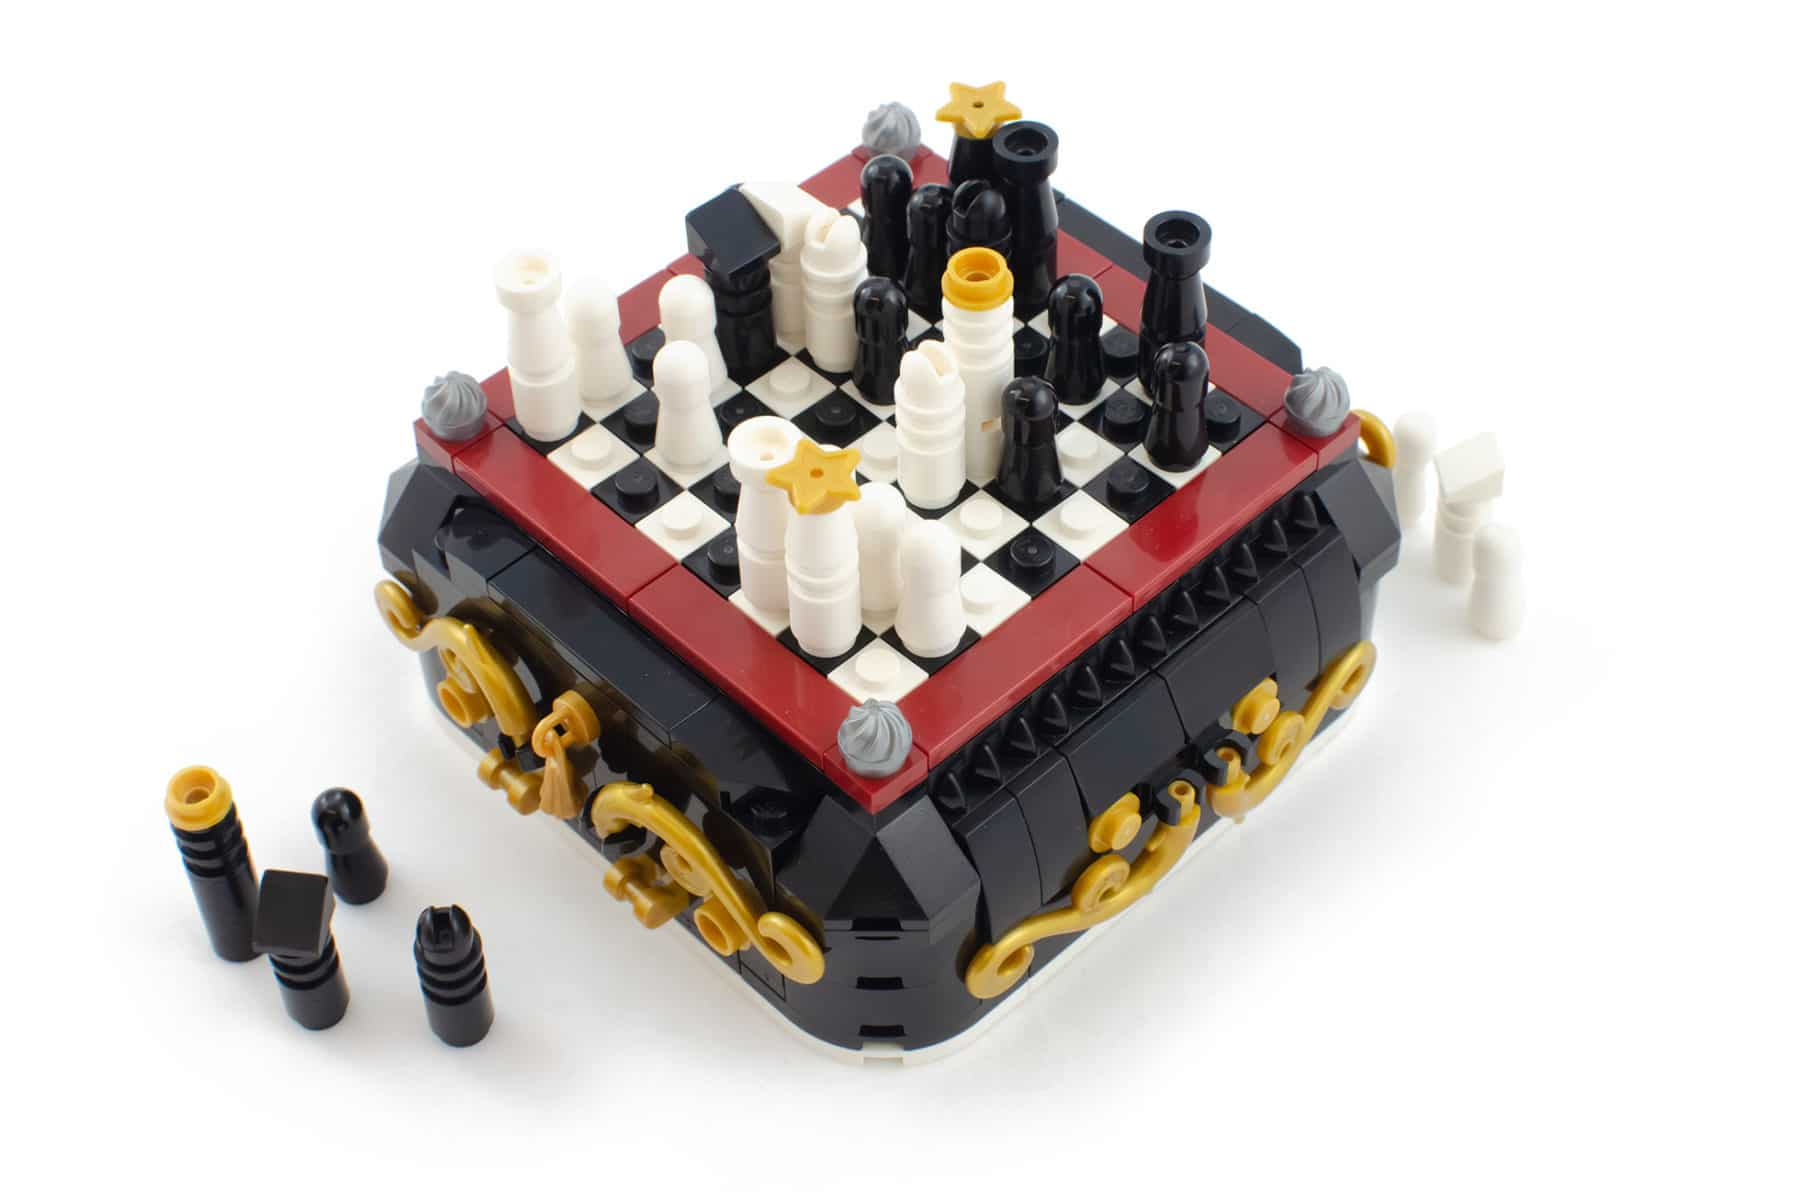 Bricklink AFOL Designer Program: Steampunk Mini Chess